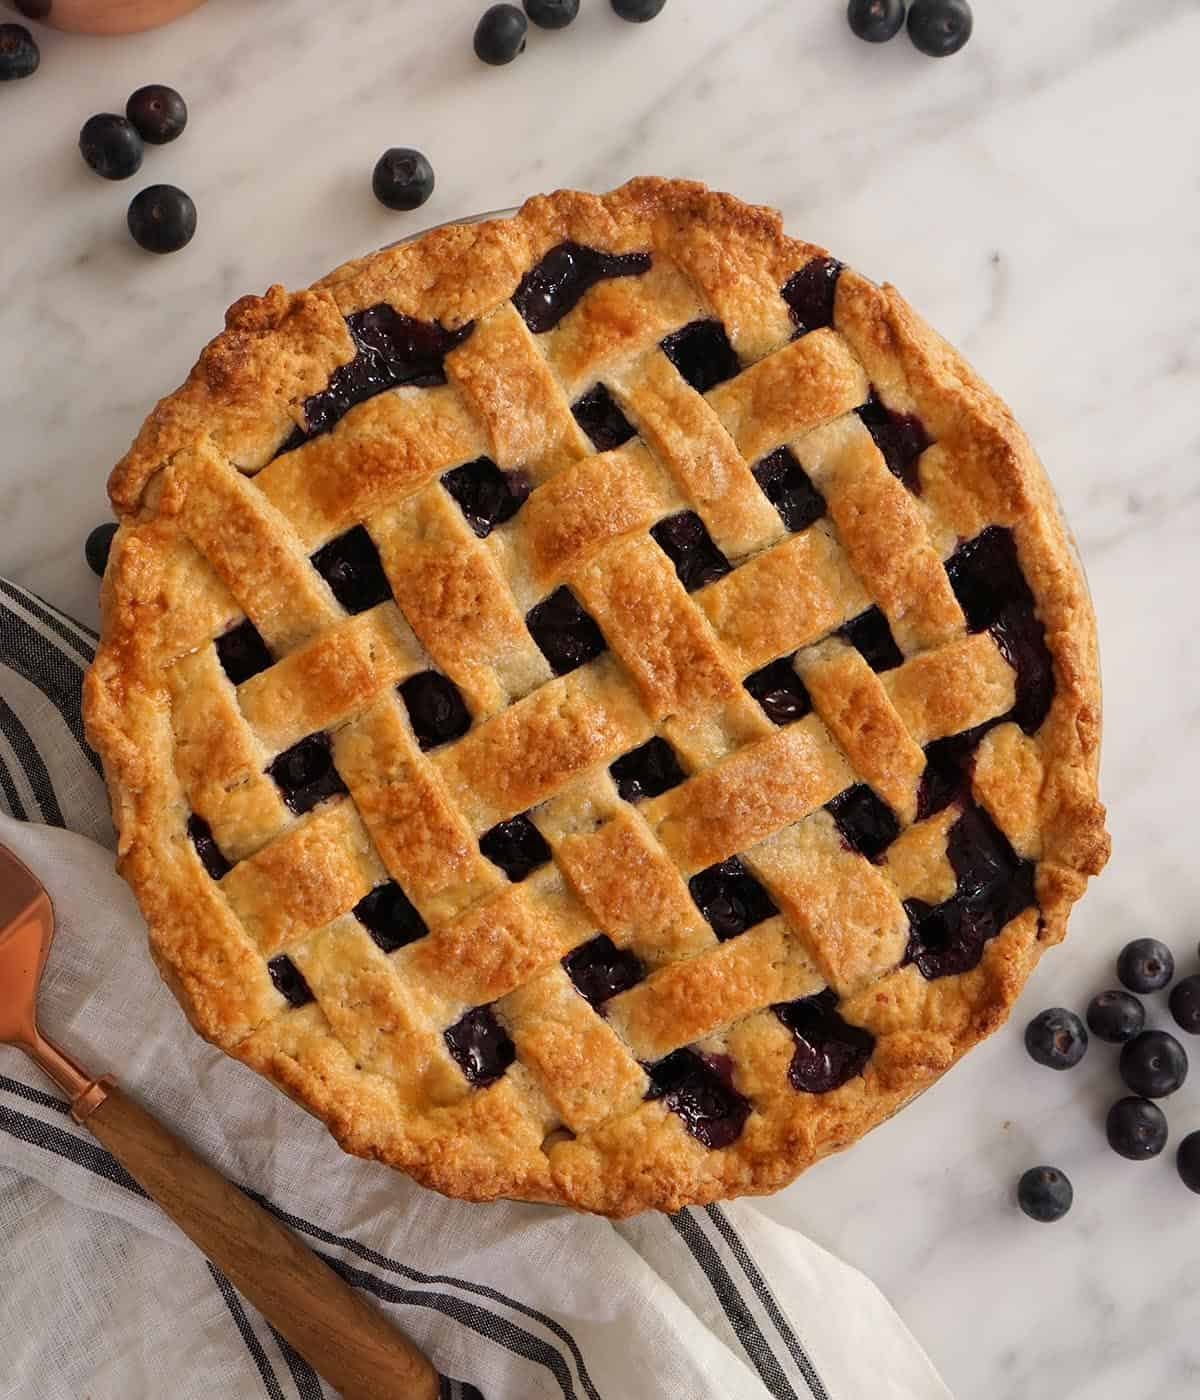 A top-down view of a blueberry pie with a lattice top.